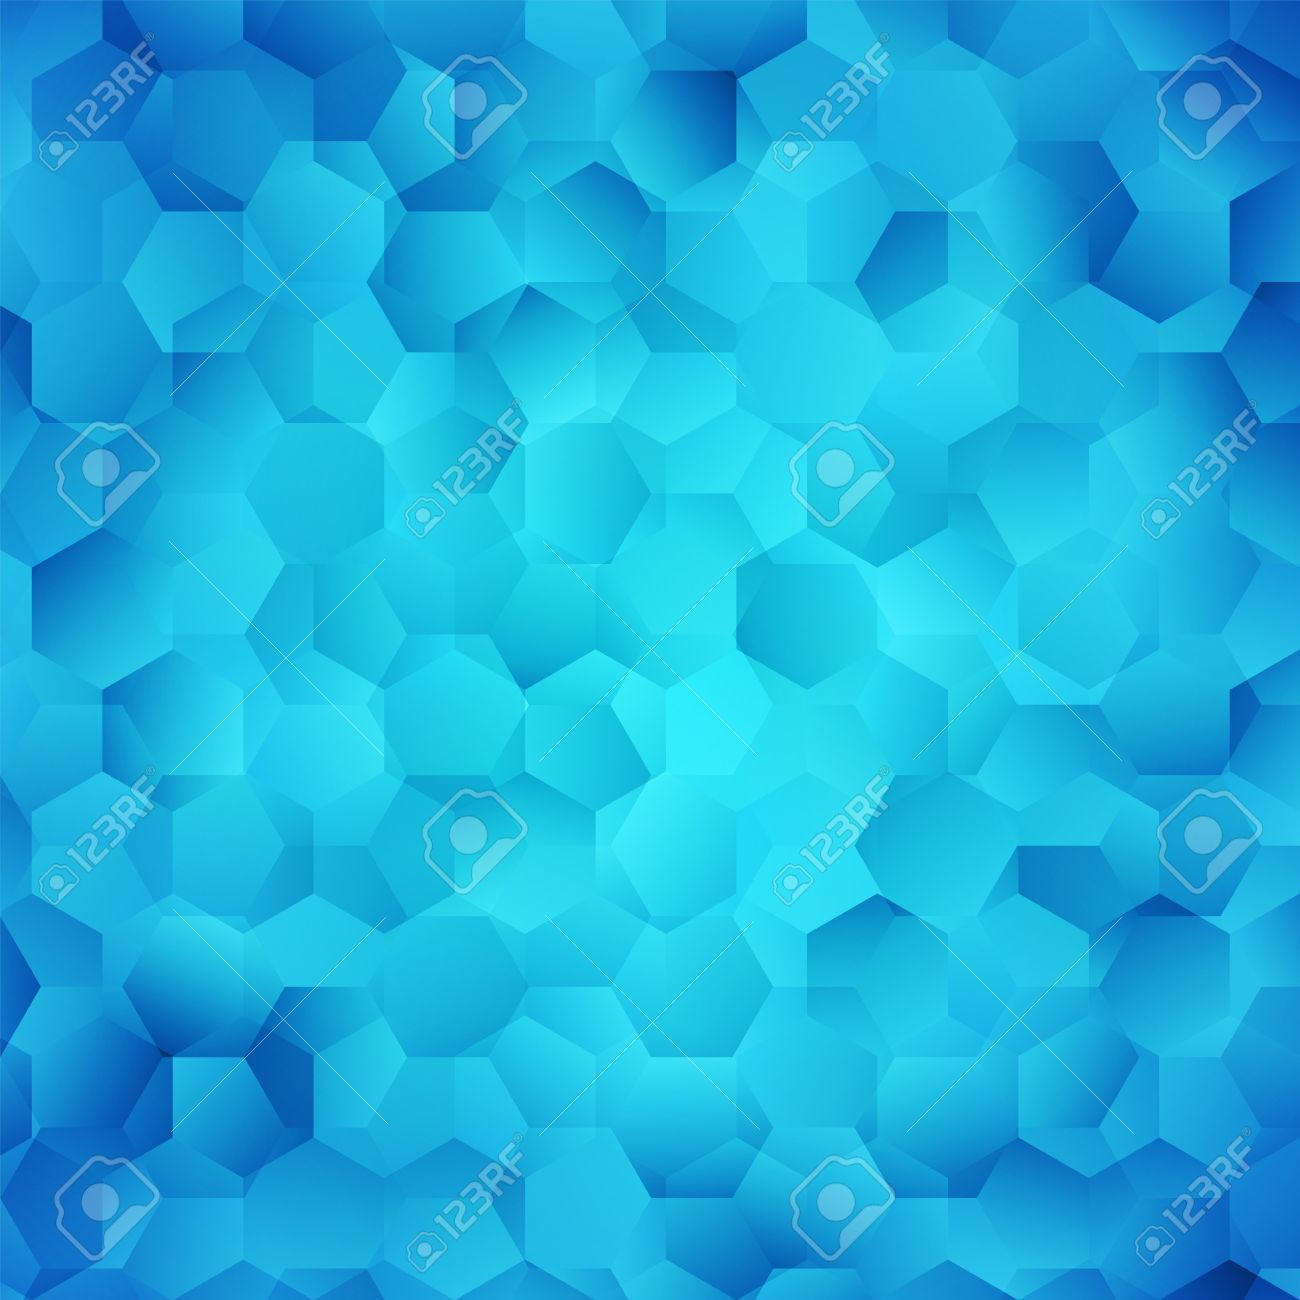 bright blue wallpaper  Abstract Bright Blue Wallpaper. Illustration For Modern Aqua.. Stock ...